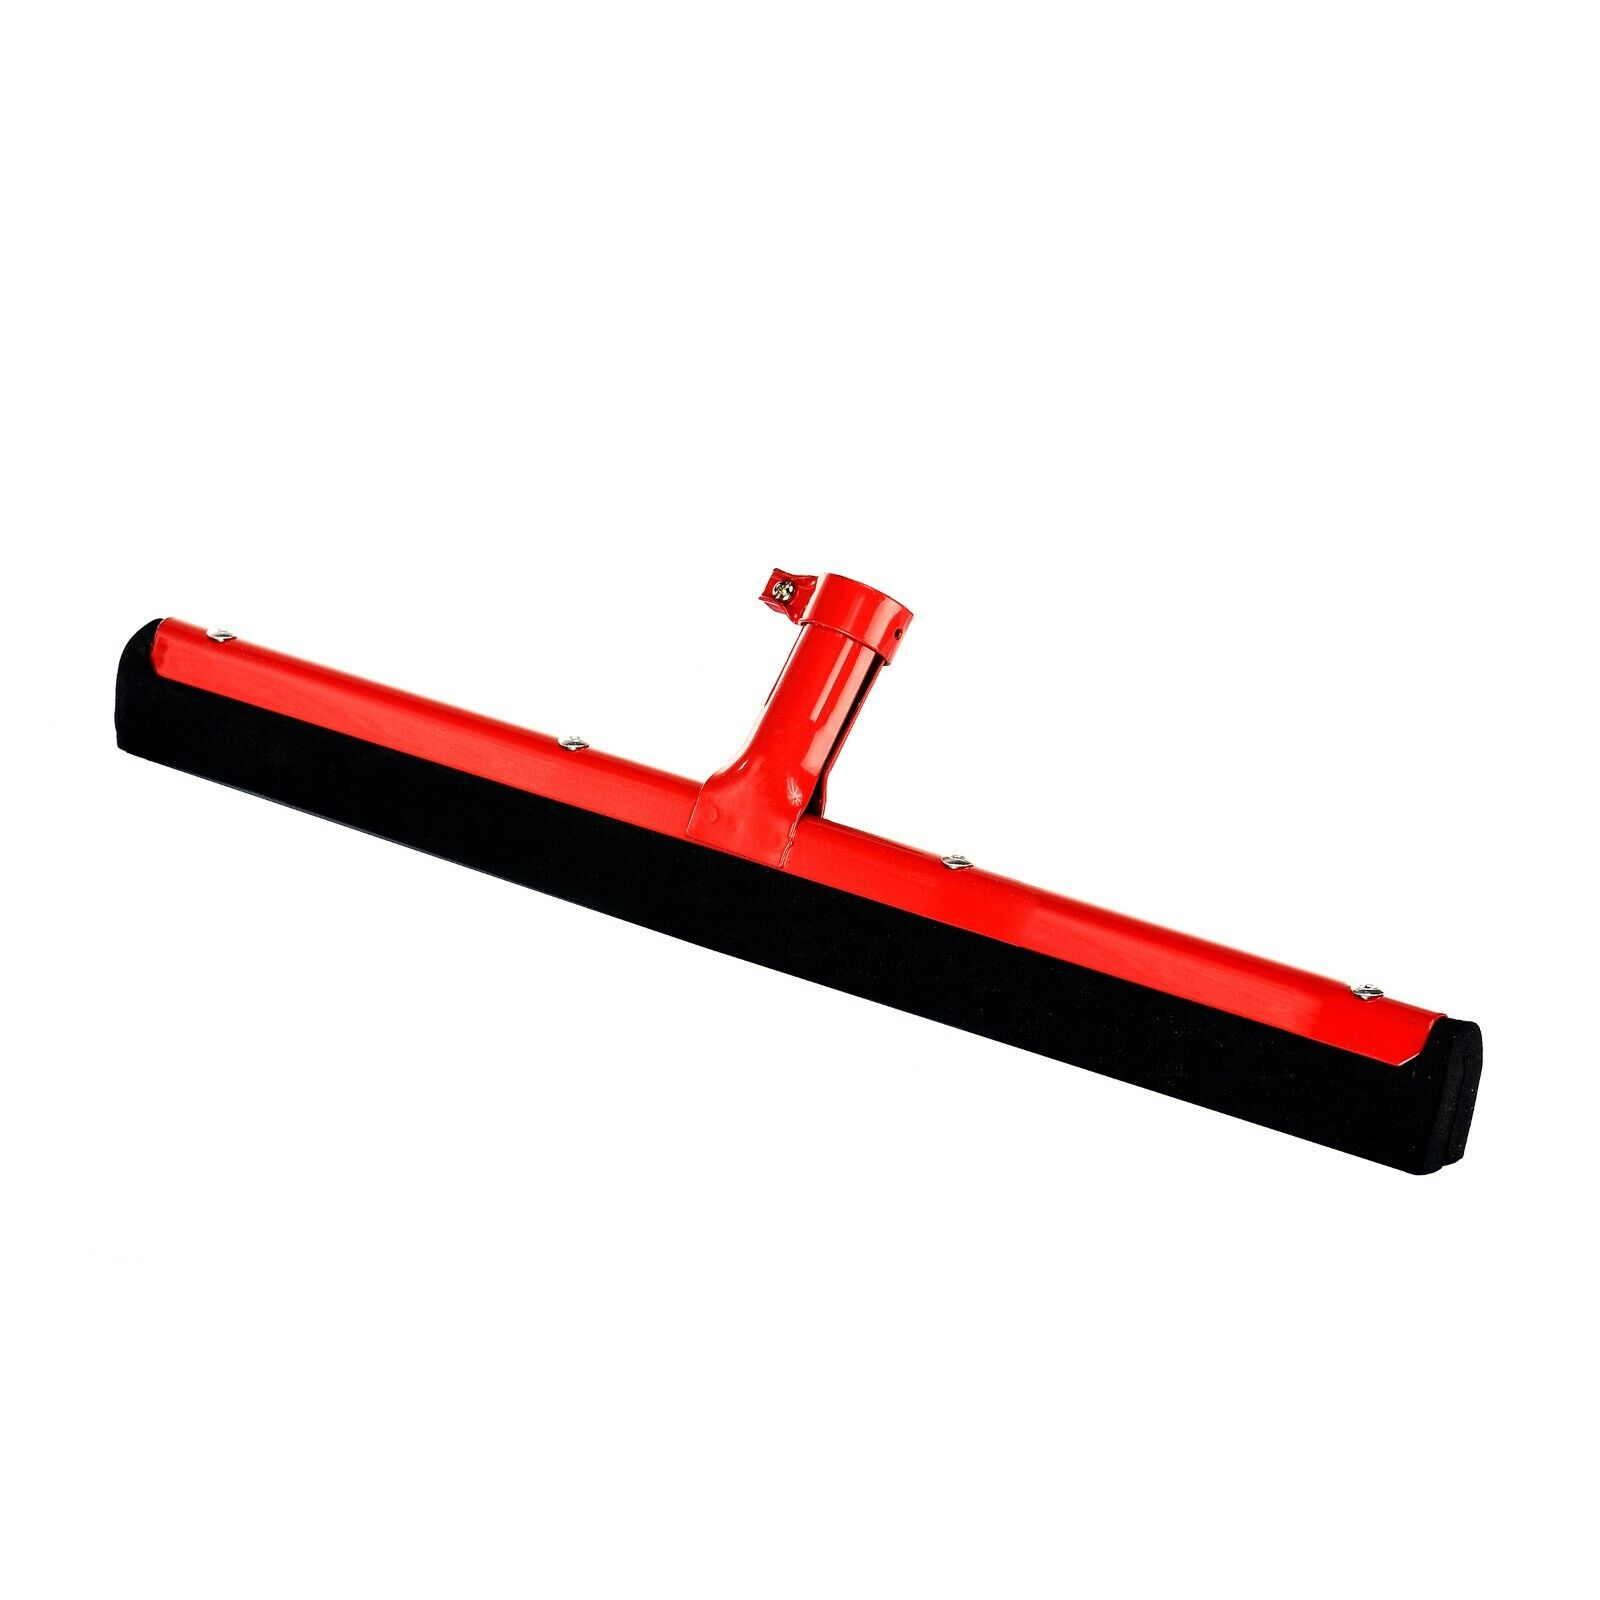 Alpine Industries 18 in Dual Moss Rubber Floor Squeegee without Handle